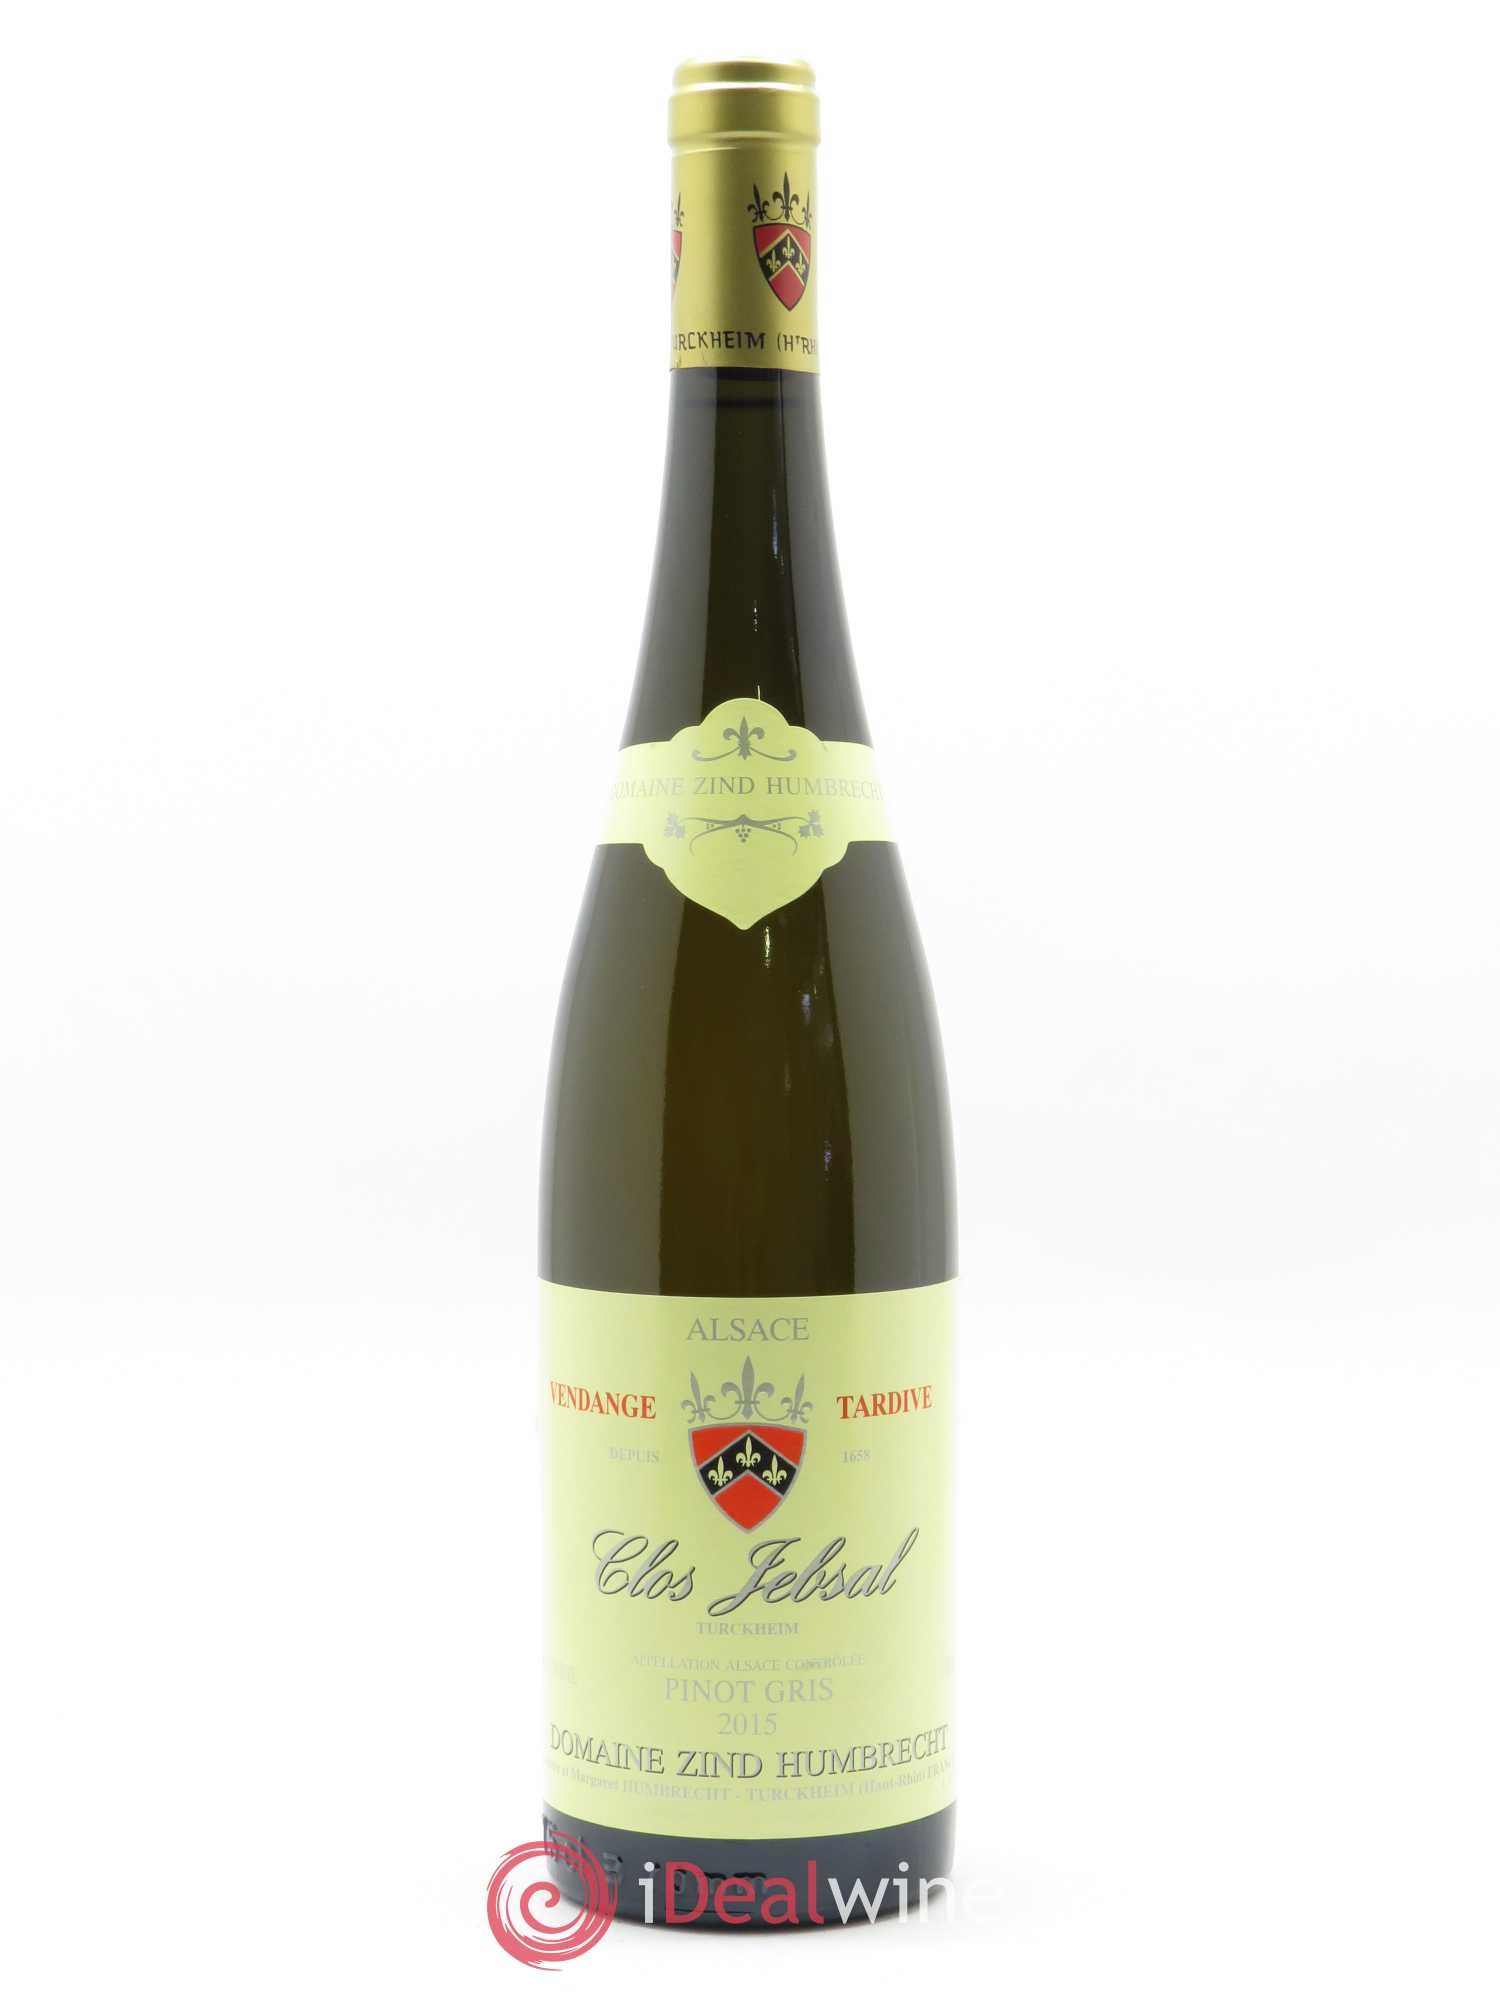 Pinot Gris (Tokay) Clos Jebsal Zind-Humbrecht (Domaine) (OWC if 6) 2015 - Lot of 1 Bottle